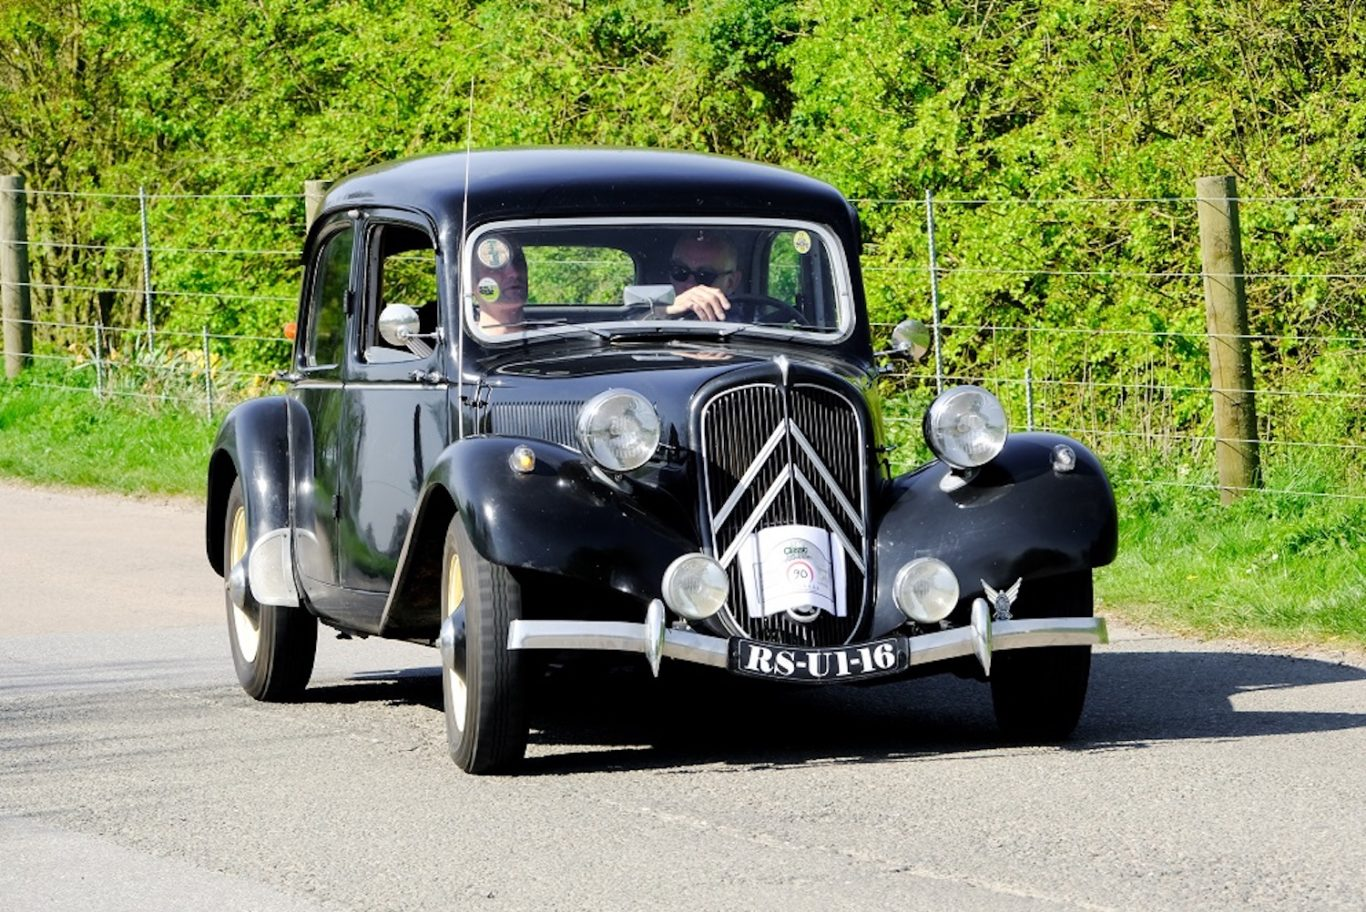 The Citroen Traction Avant remained in production for more than 20 years in one form or another